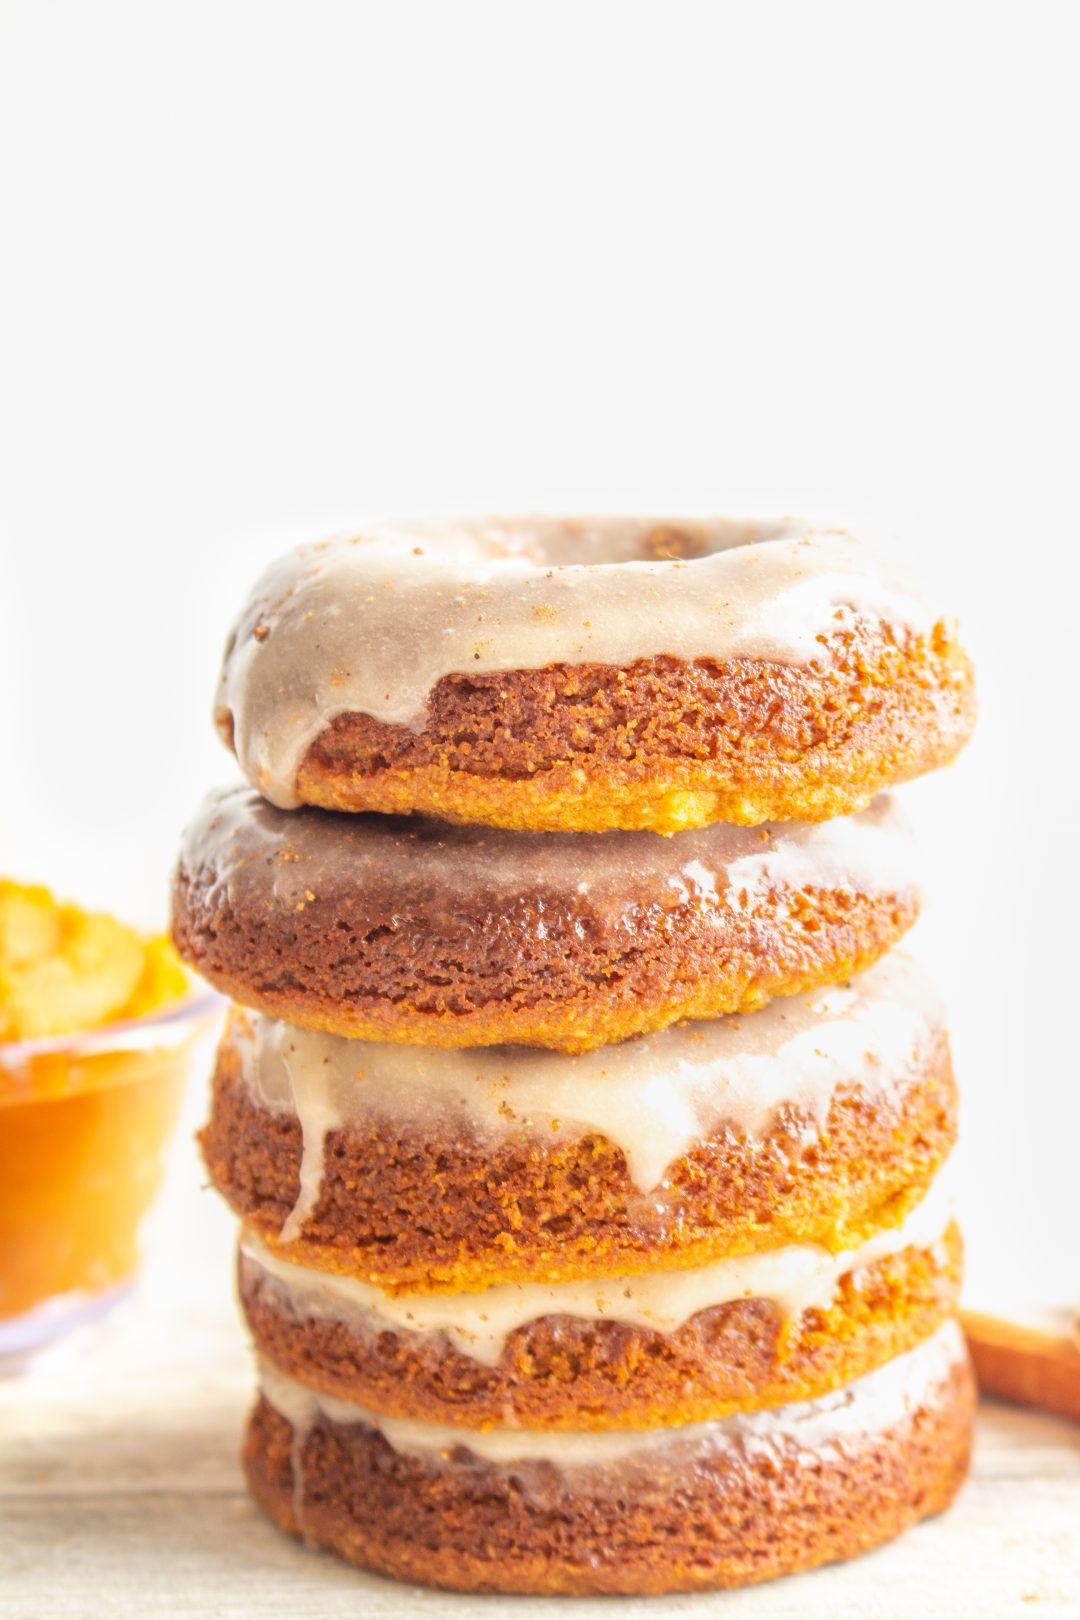 All you'll need to make these Pumpkin Spice Donuts are a few simple ingredients, a bowl, and a spoon! They're naturally grain free, paleo, gluten free, and dairy free too. #glutenfreedonuts #paleodonuts #pumpkindonuts #bakeddonuts